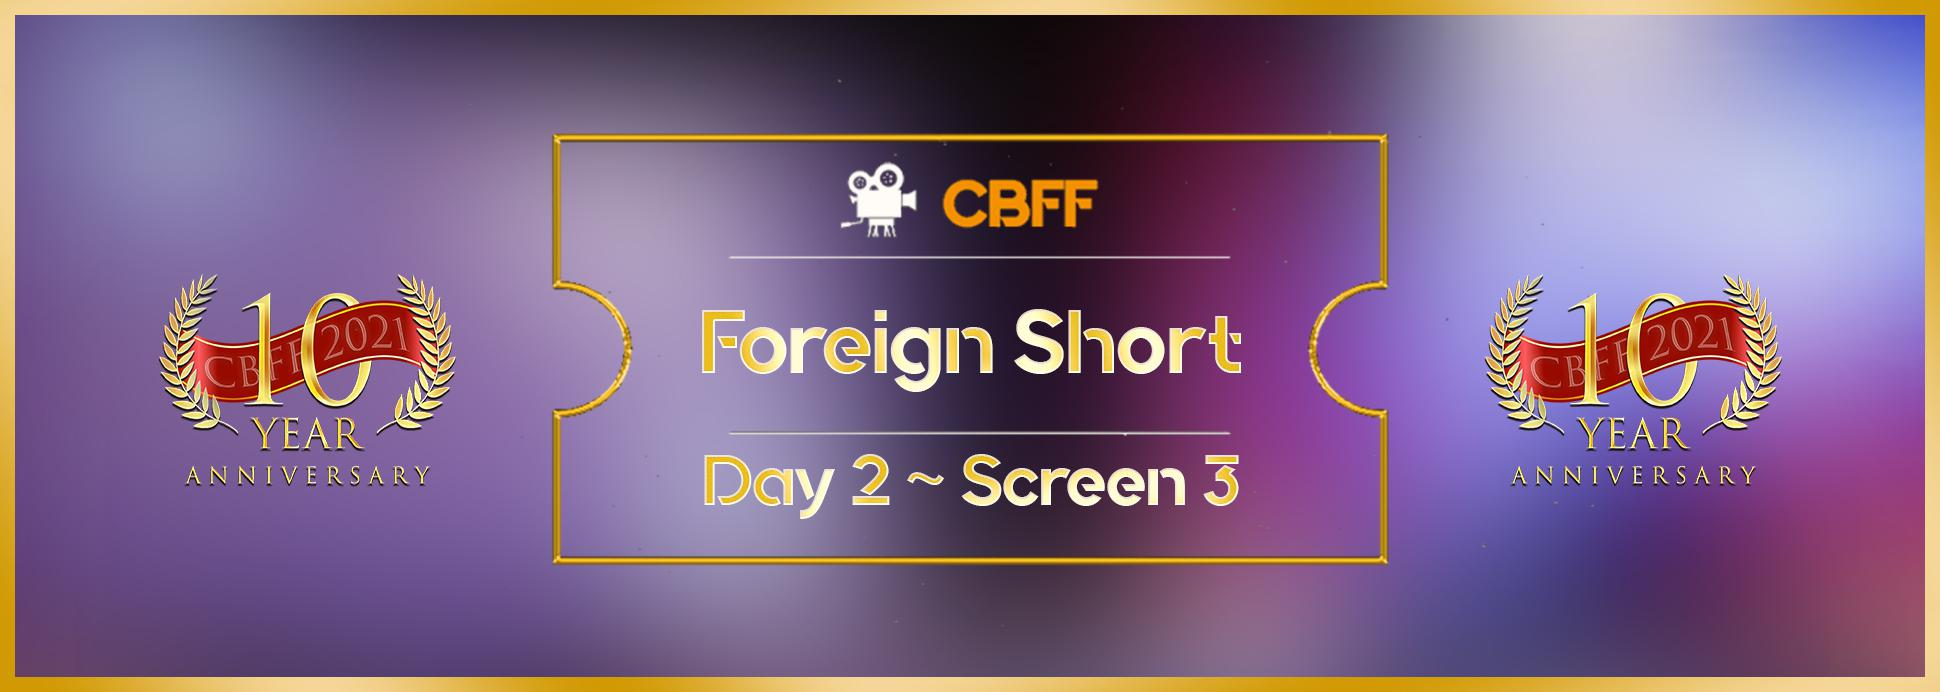 Day 2, Screen 3: Foreign Shorts 3